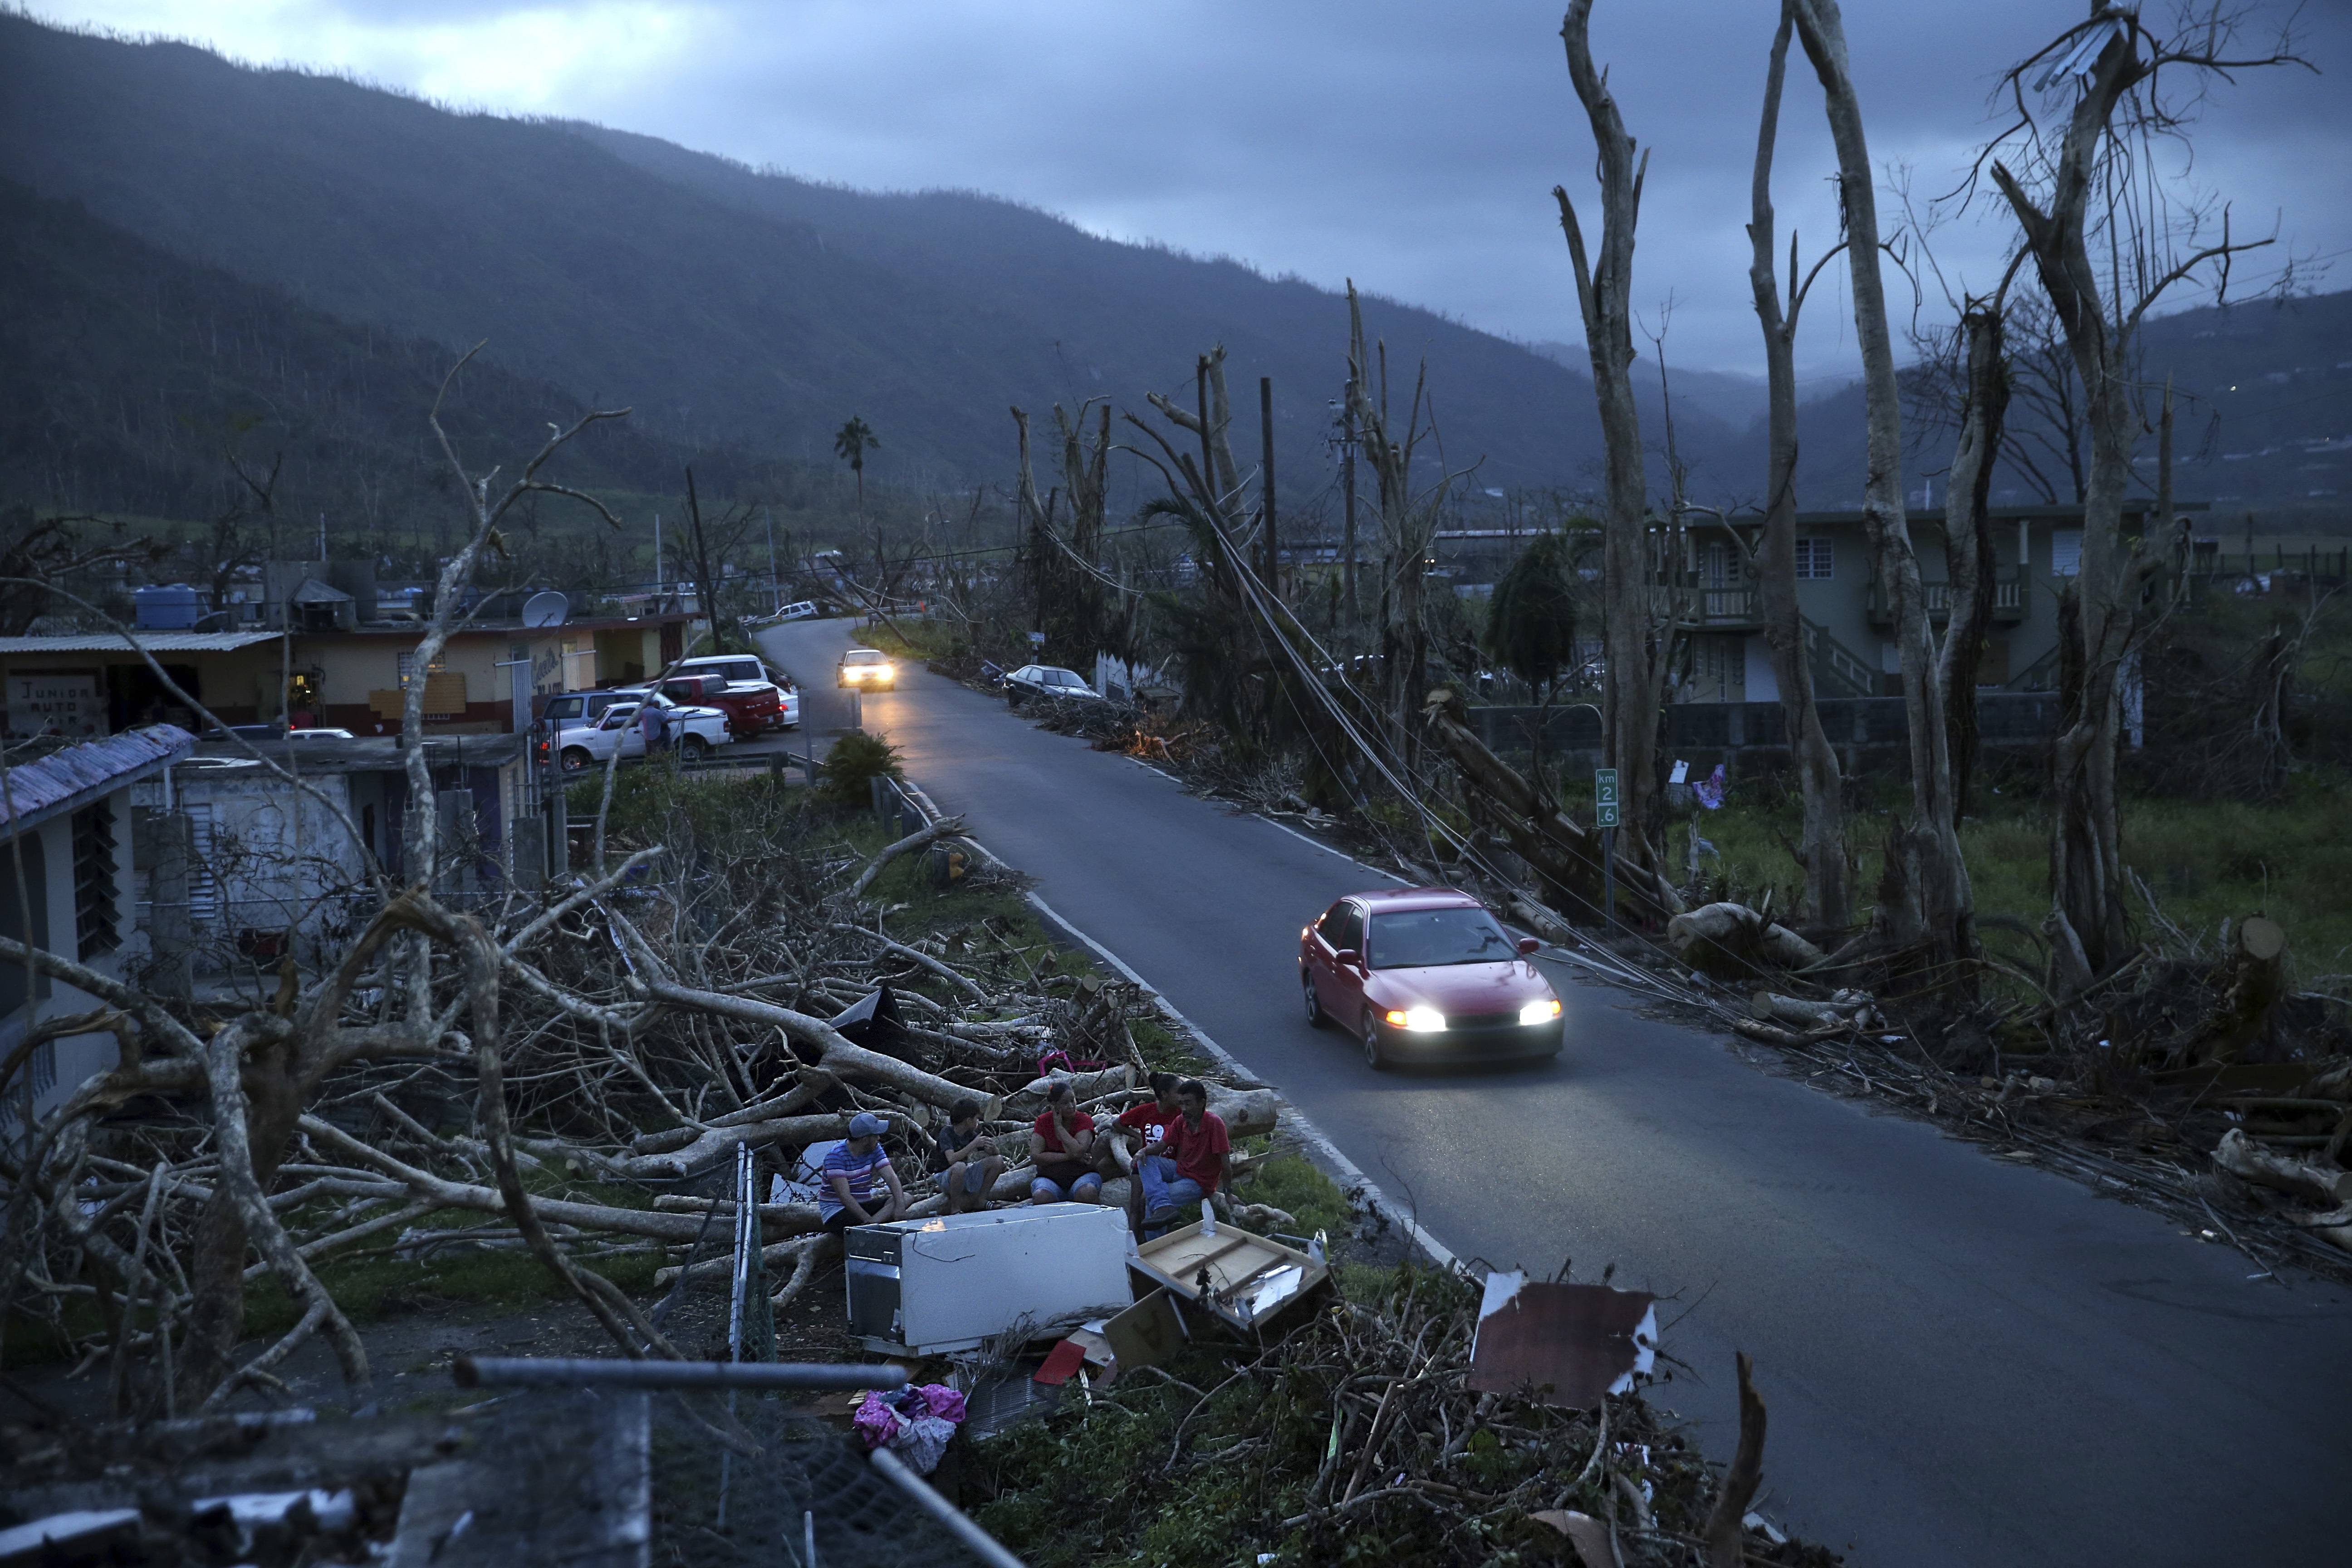 The Salvation Army has served more than 1.2 million people in Puerto Rico and the U.S. Virgin Islands since Hurricane Maria made landfall. In this Sept. 26, 2017 photo, neighbors sit on a couch outside their destroyed homes as sun sets in the aftermath of Hurricane Maria, in Yabucoa, Puerto Rico.